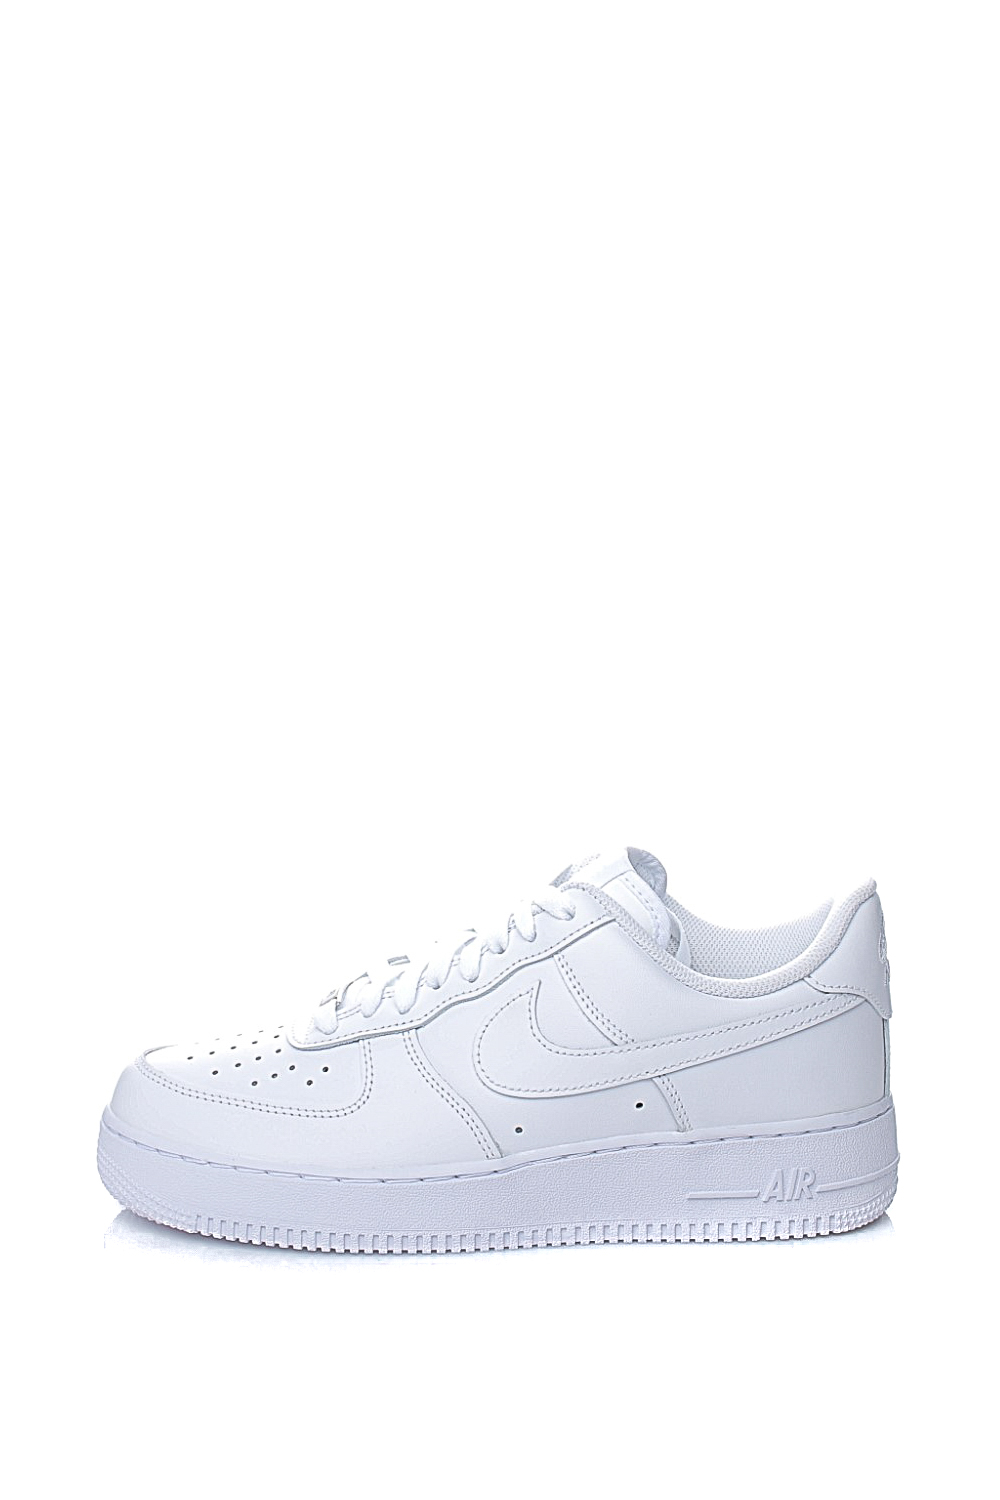 NIKE – Ανδρικά παπούτσια AIR FORCE 1 '07 λευκά